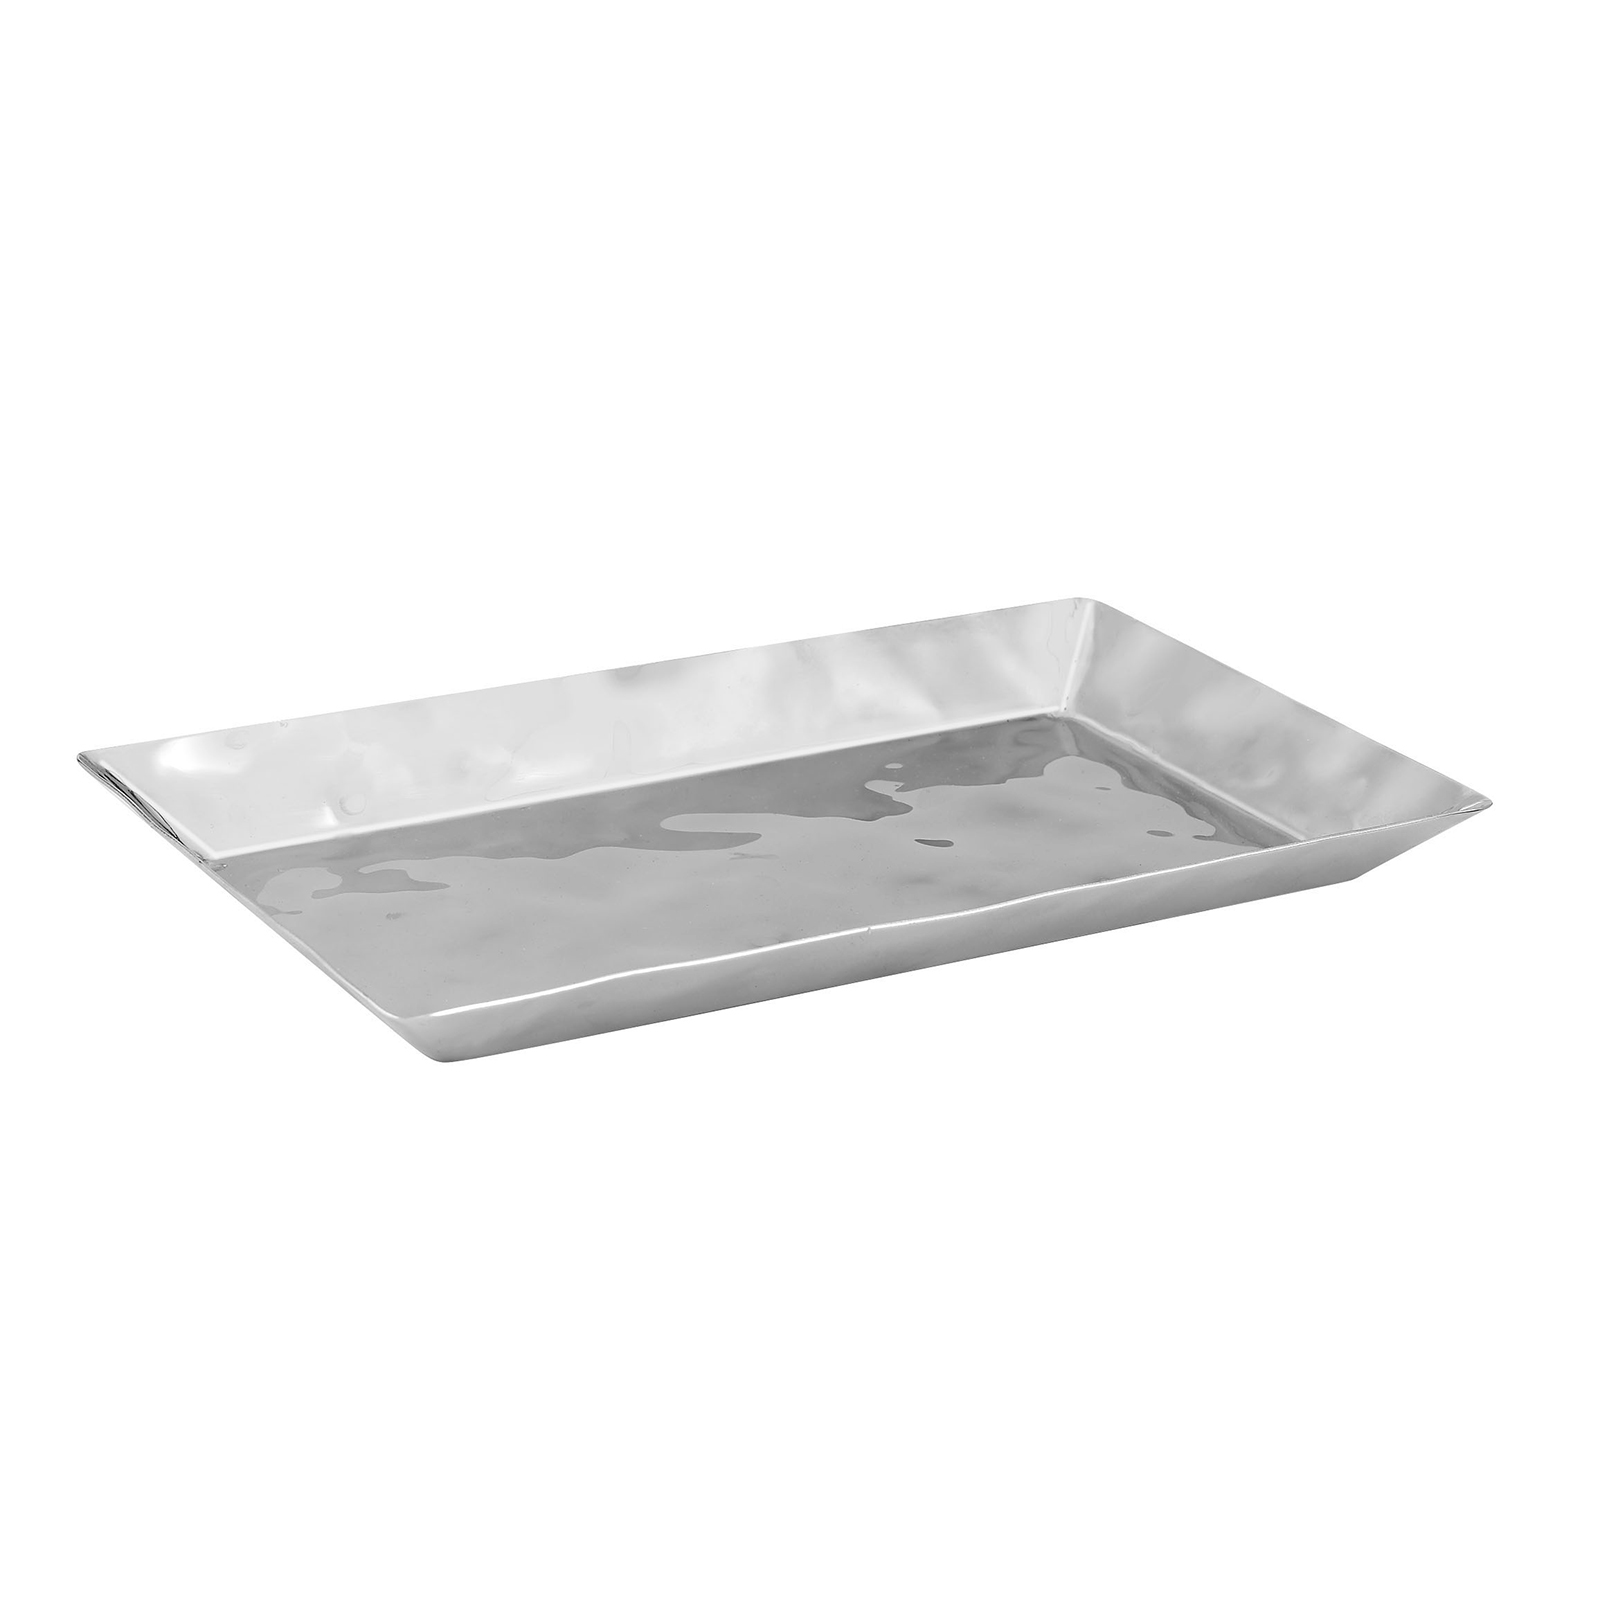 Winco HPO-12 display tray, market / bakery